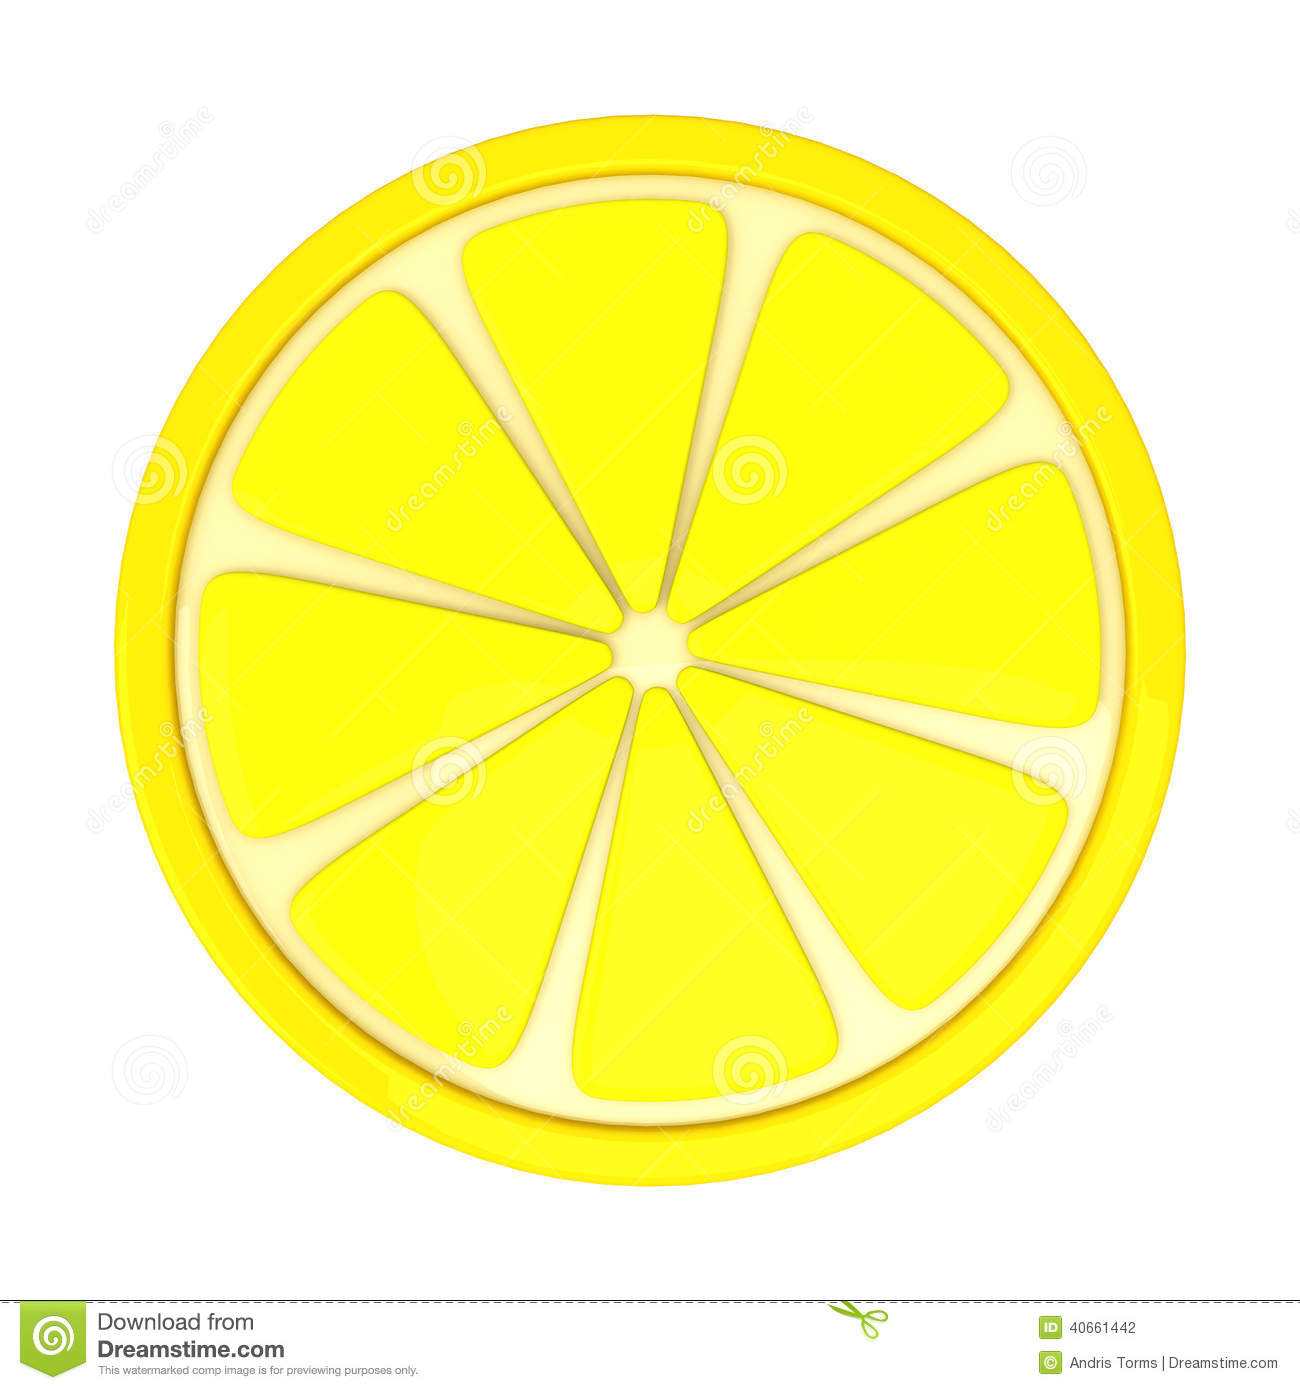 Lemon Fruit Slice, 3d Stock Illustration - Image: 40661442